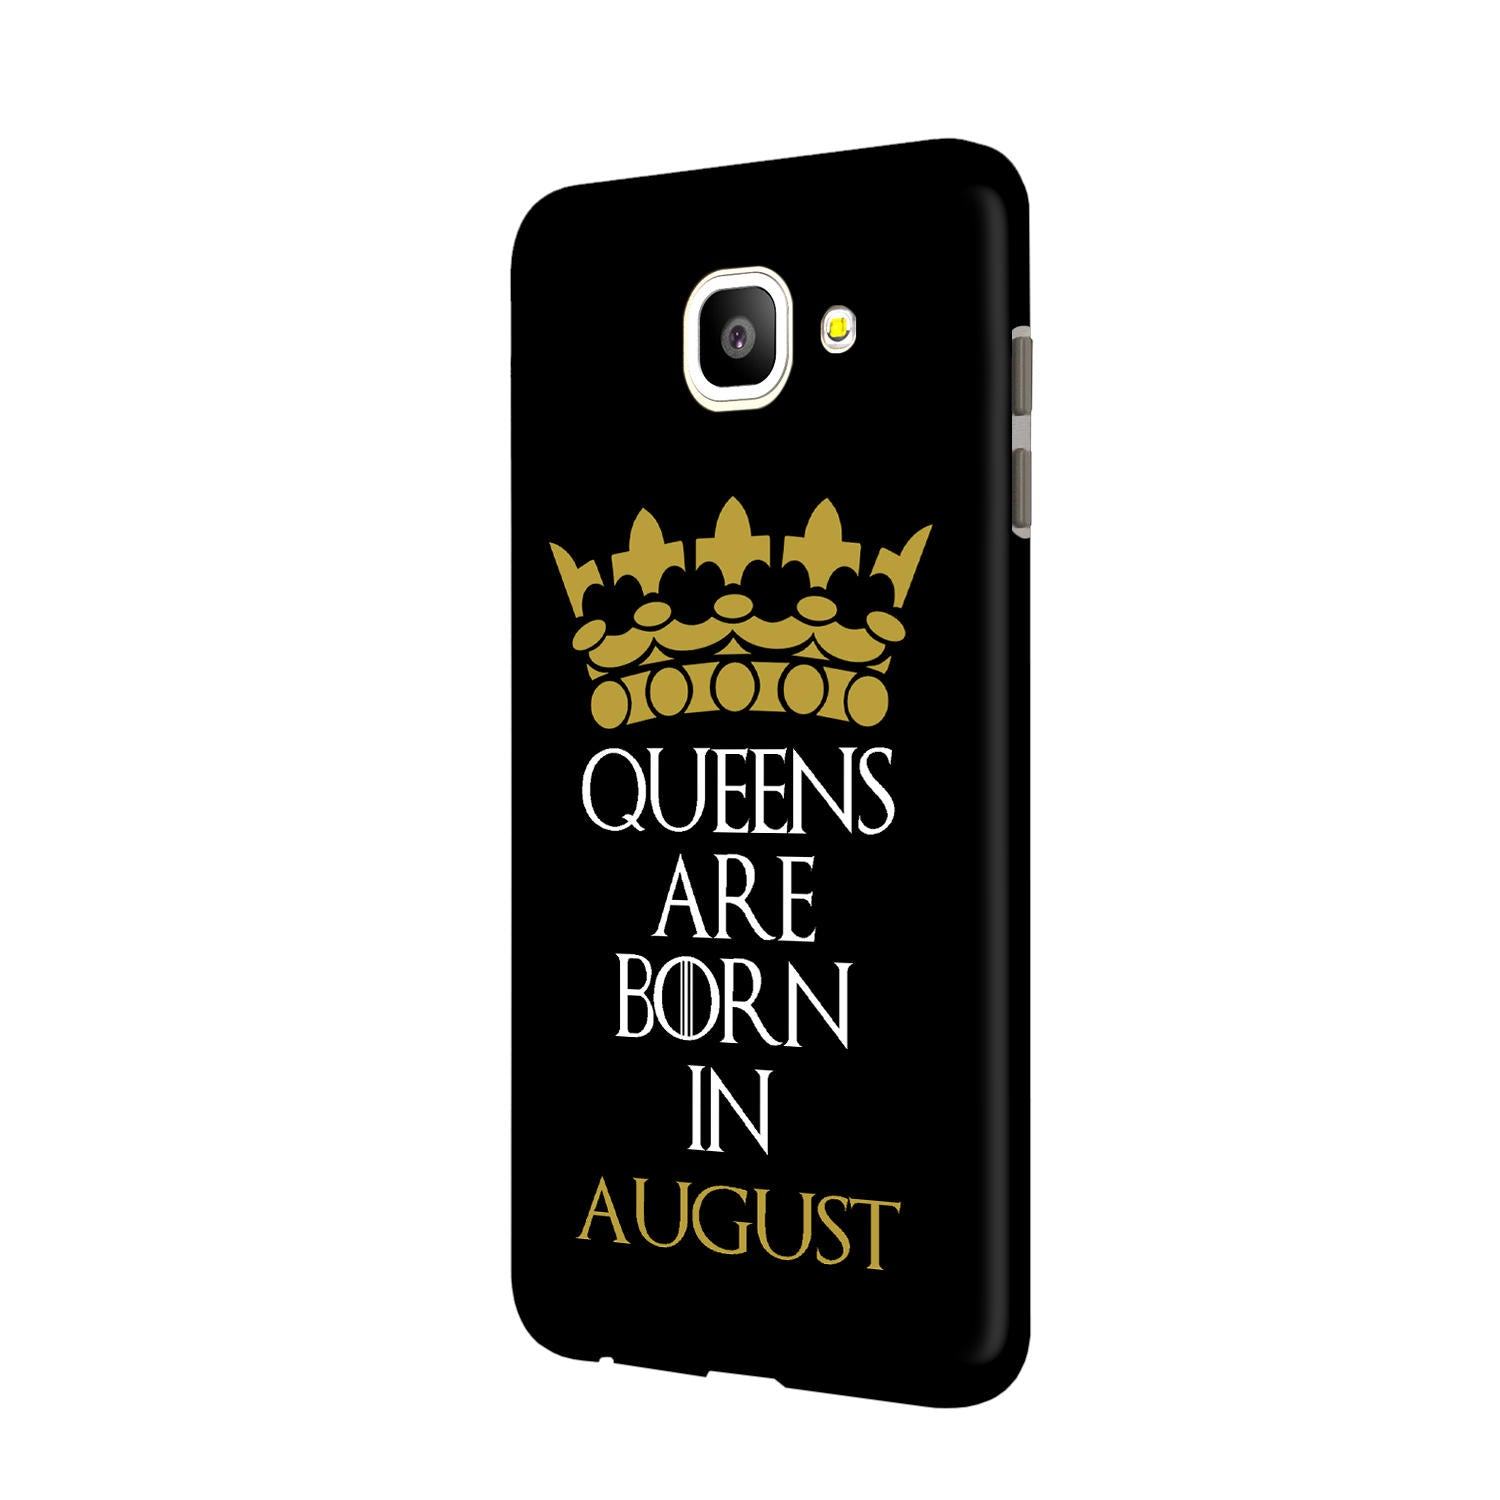 Queens August Samsung Galaxy J7 Max Mobile Cover Case - MADANYU